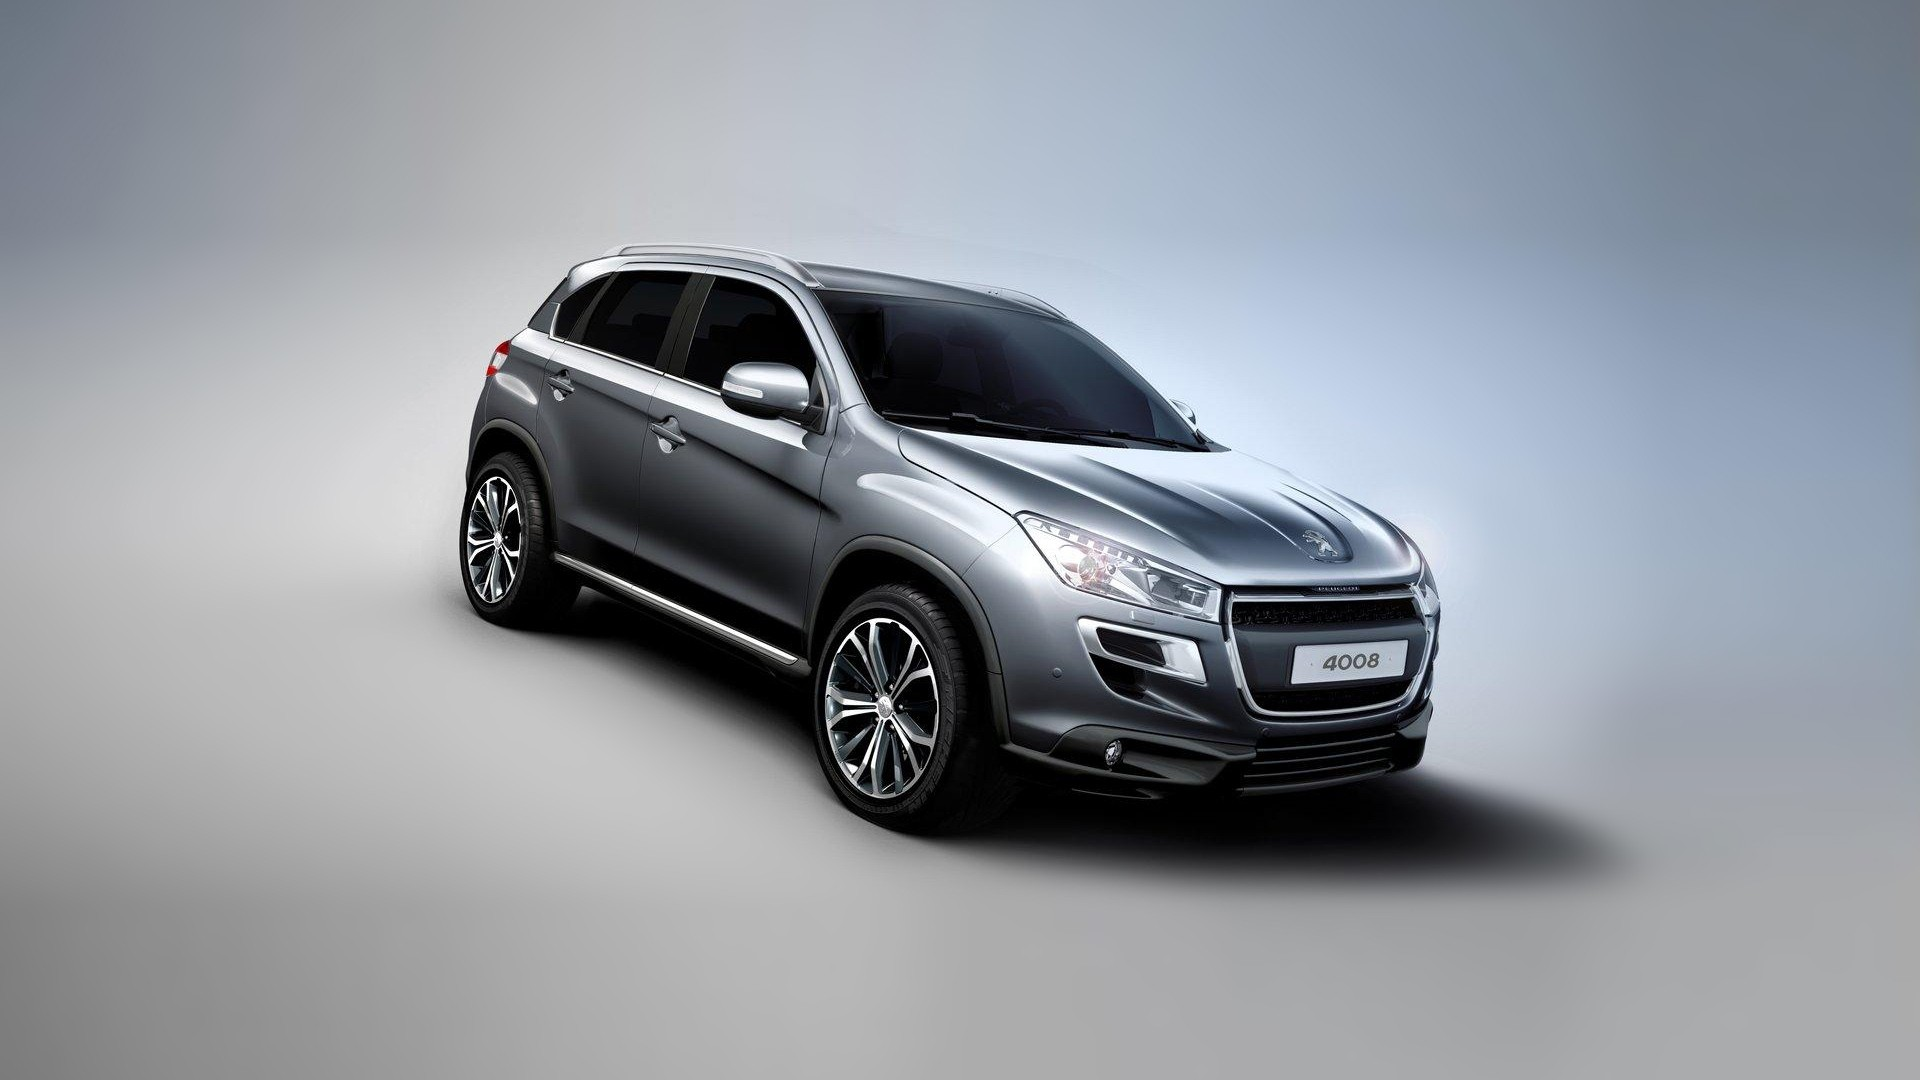 The new Peugeot 4008, photo